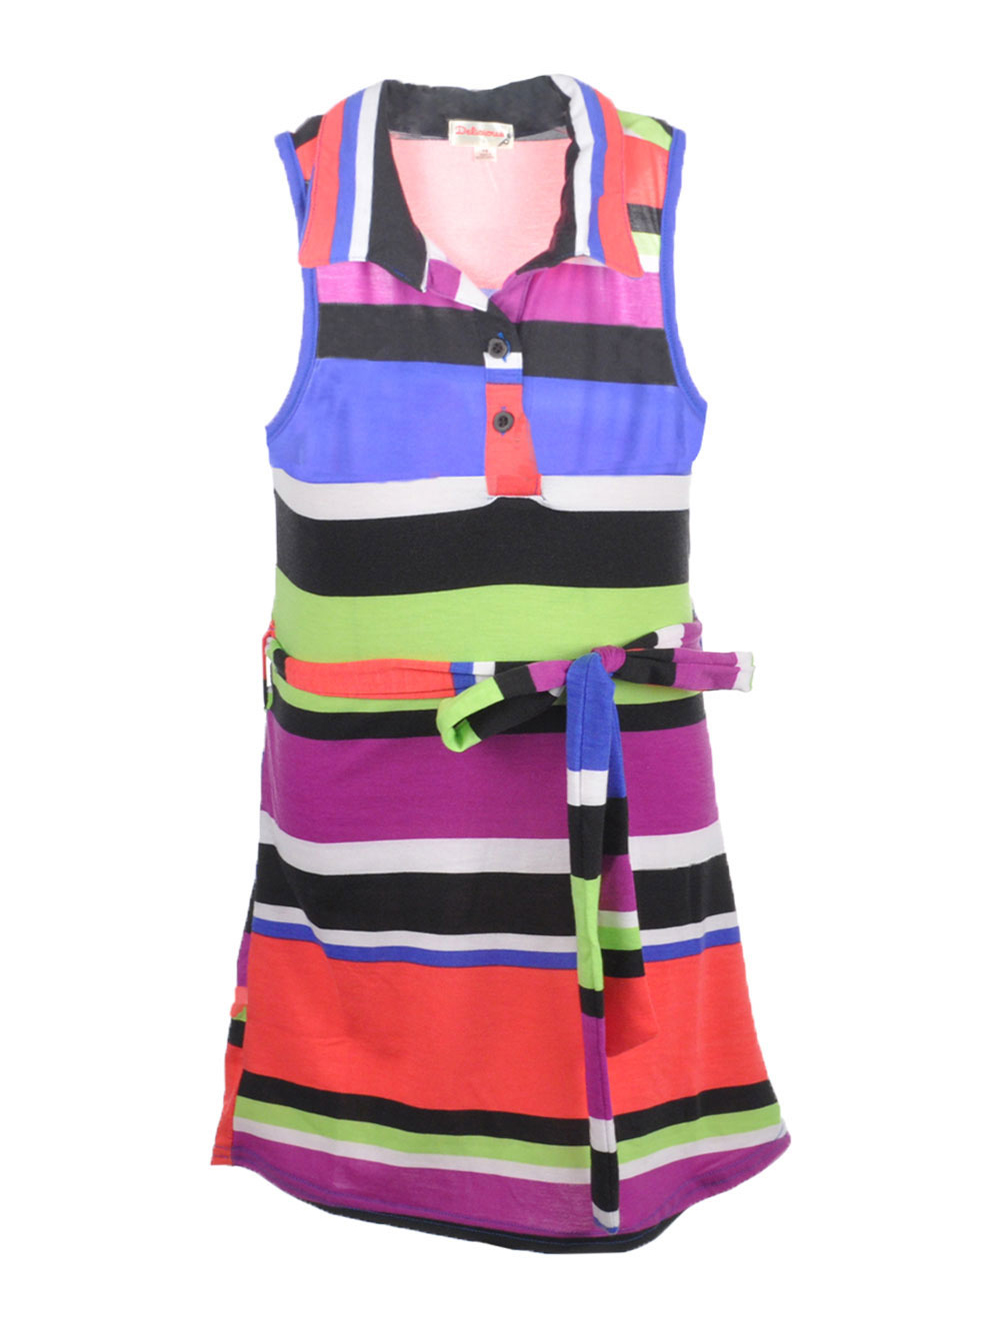 Image of Delicious Little Girls Polo Pop Belted Sundress Sizes 4  6X